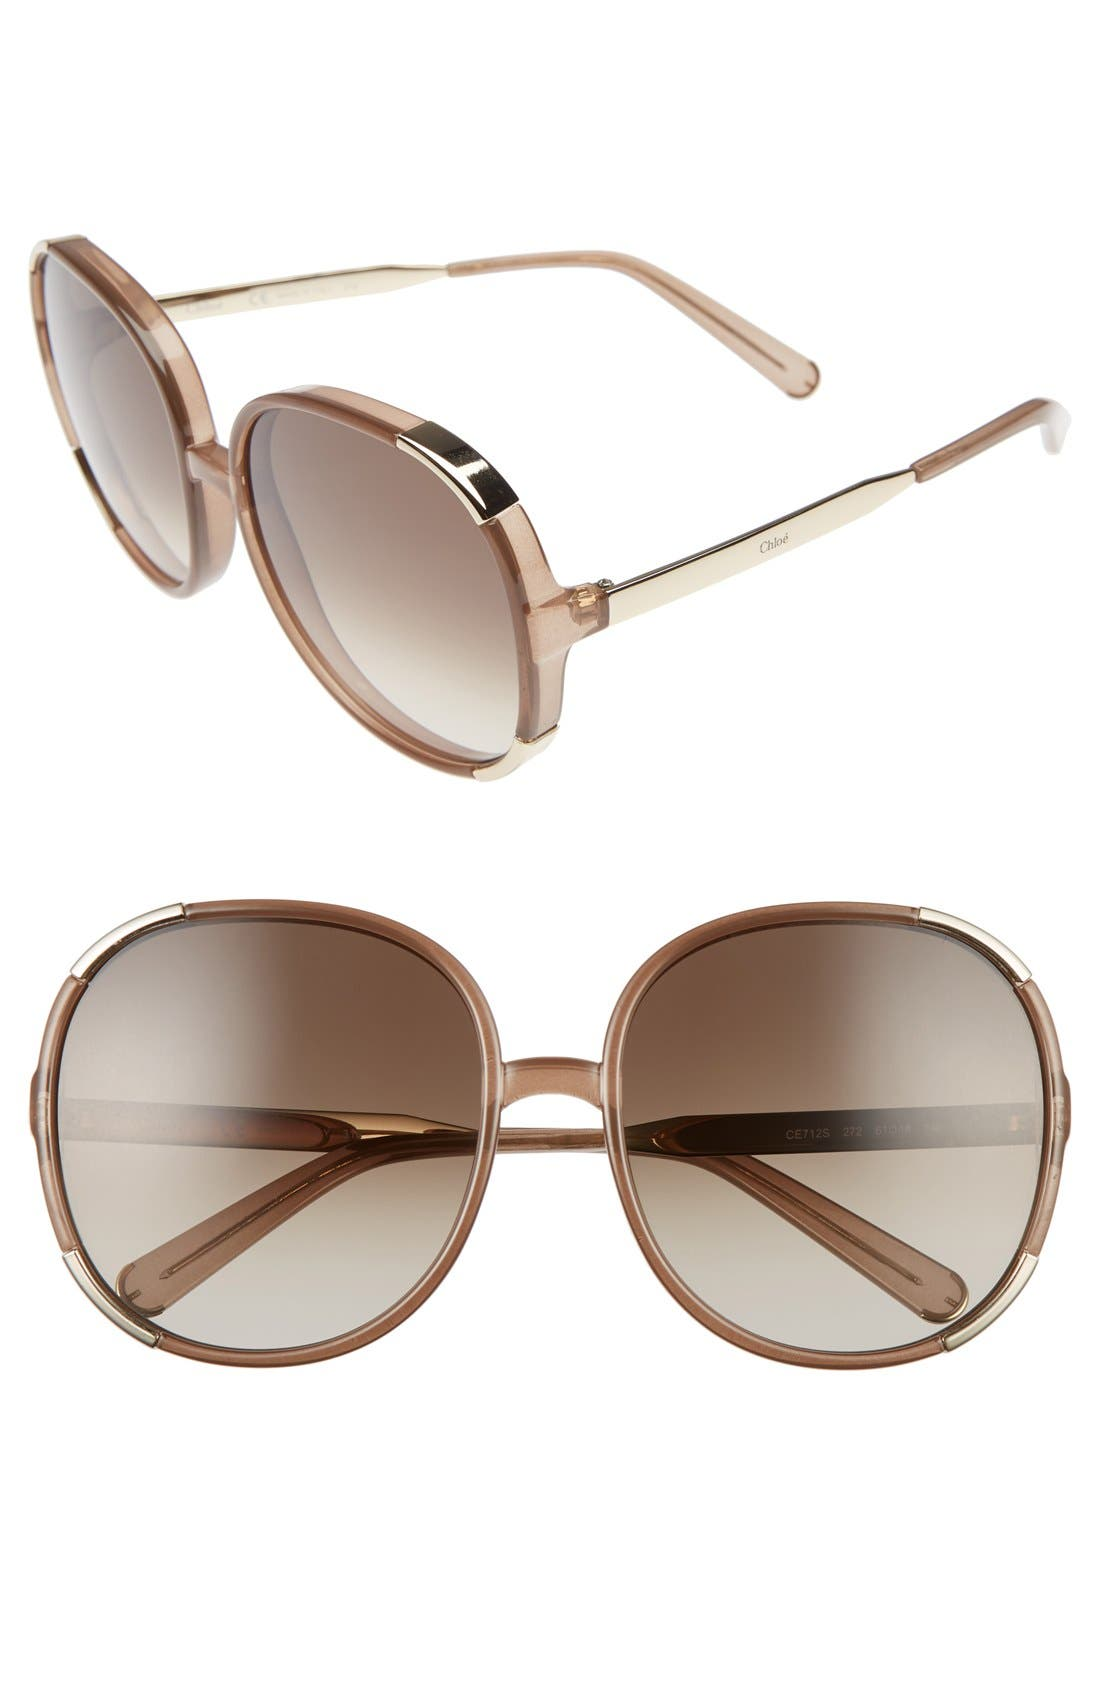 Main Image - Chloé Myrte 61mm Sunglasses